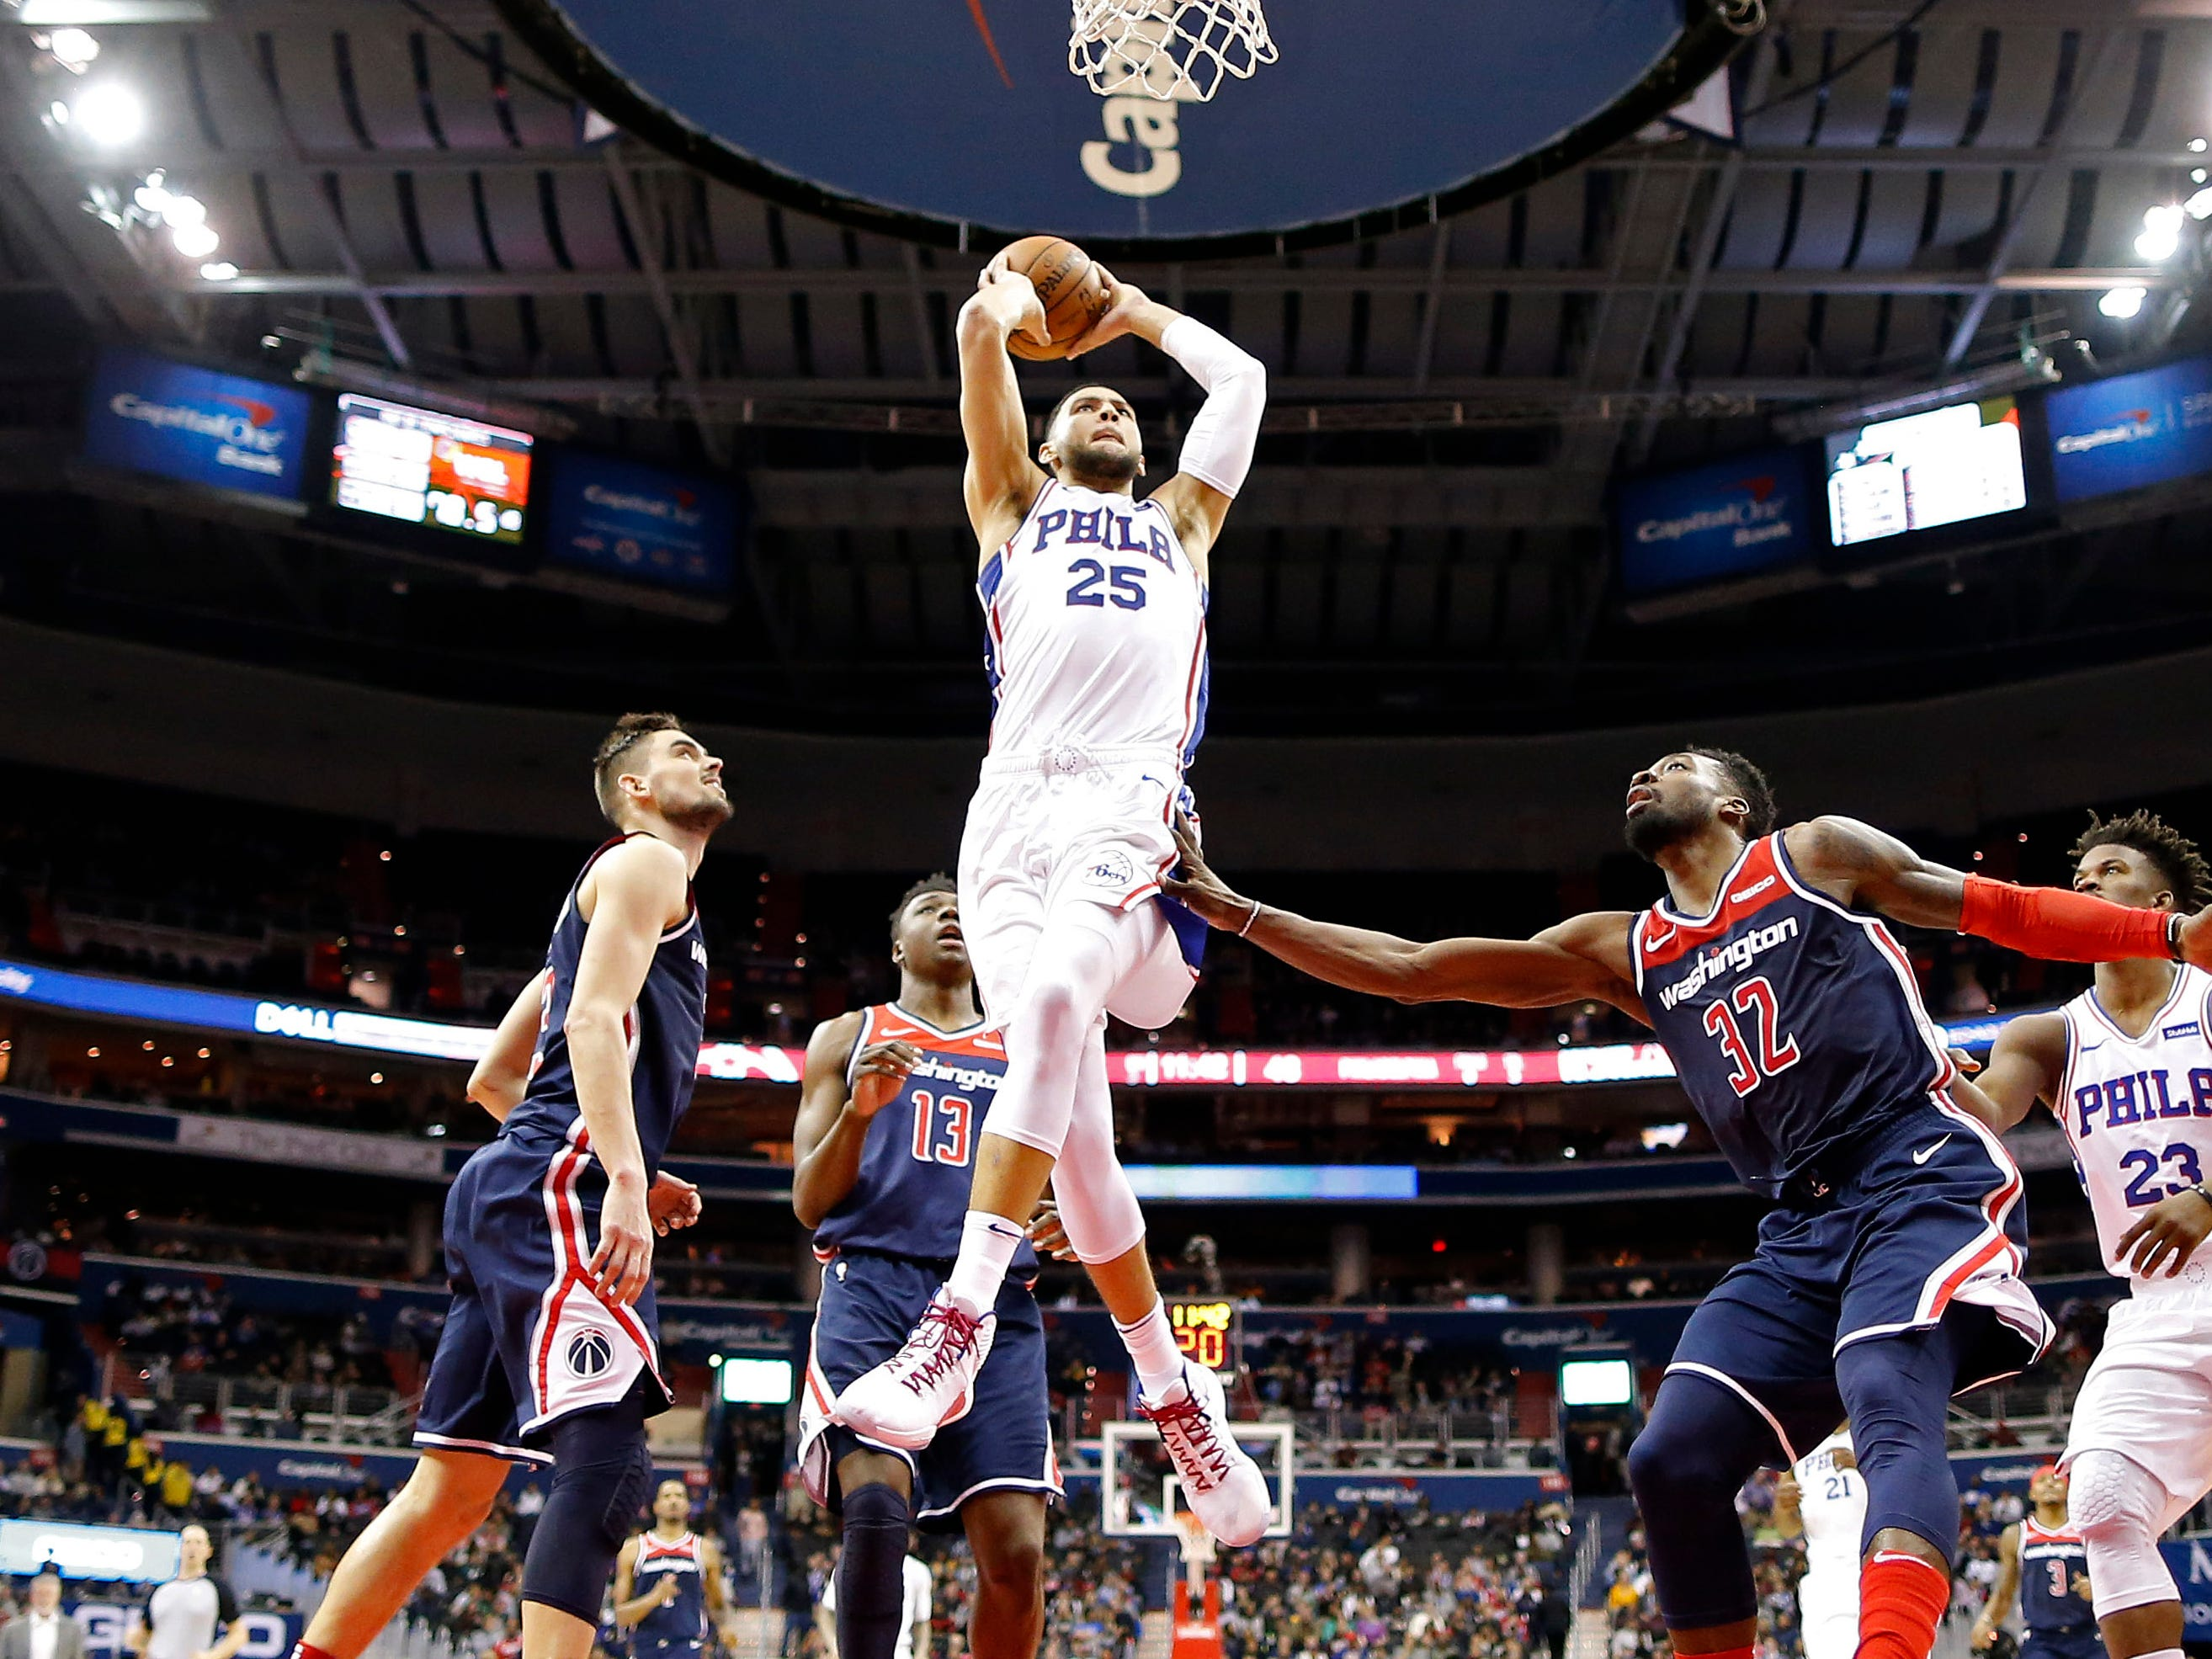 Jan. 9: Sixers guard Ben Simmons (25) drives the lane for a two-haned flush during the second half against the Wizards in Washington.